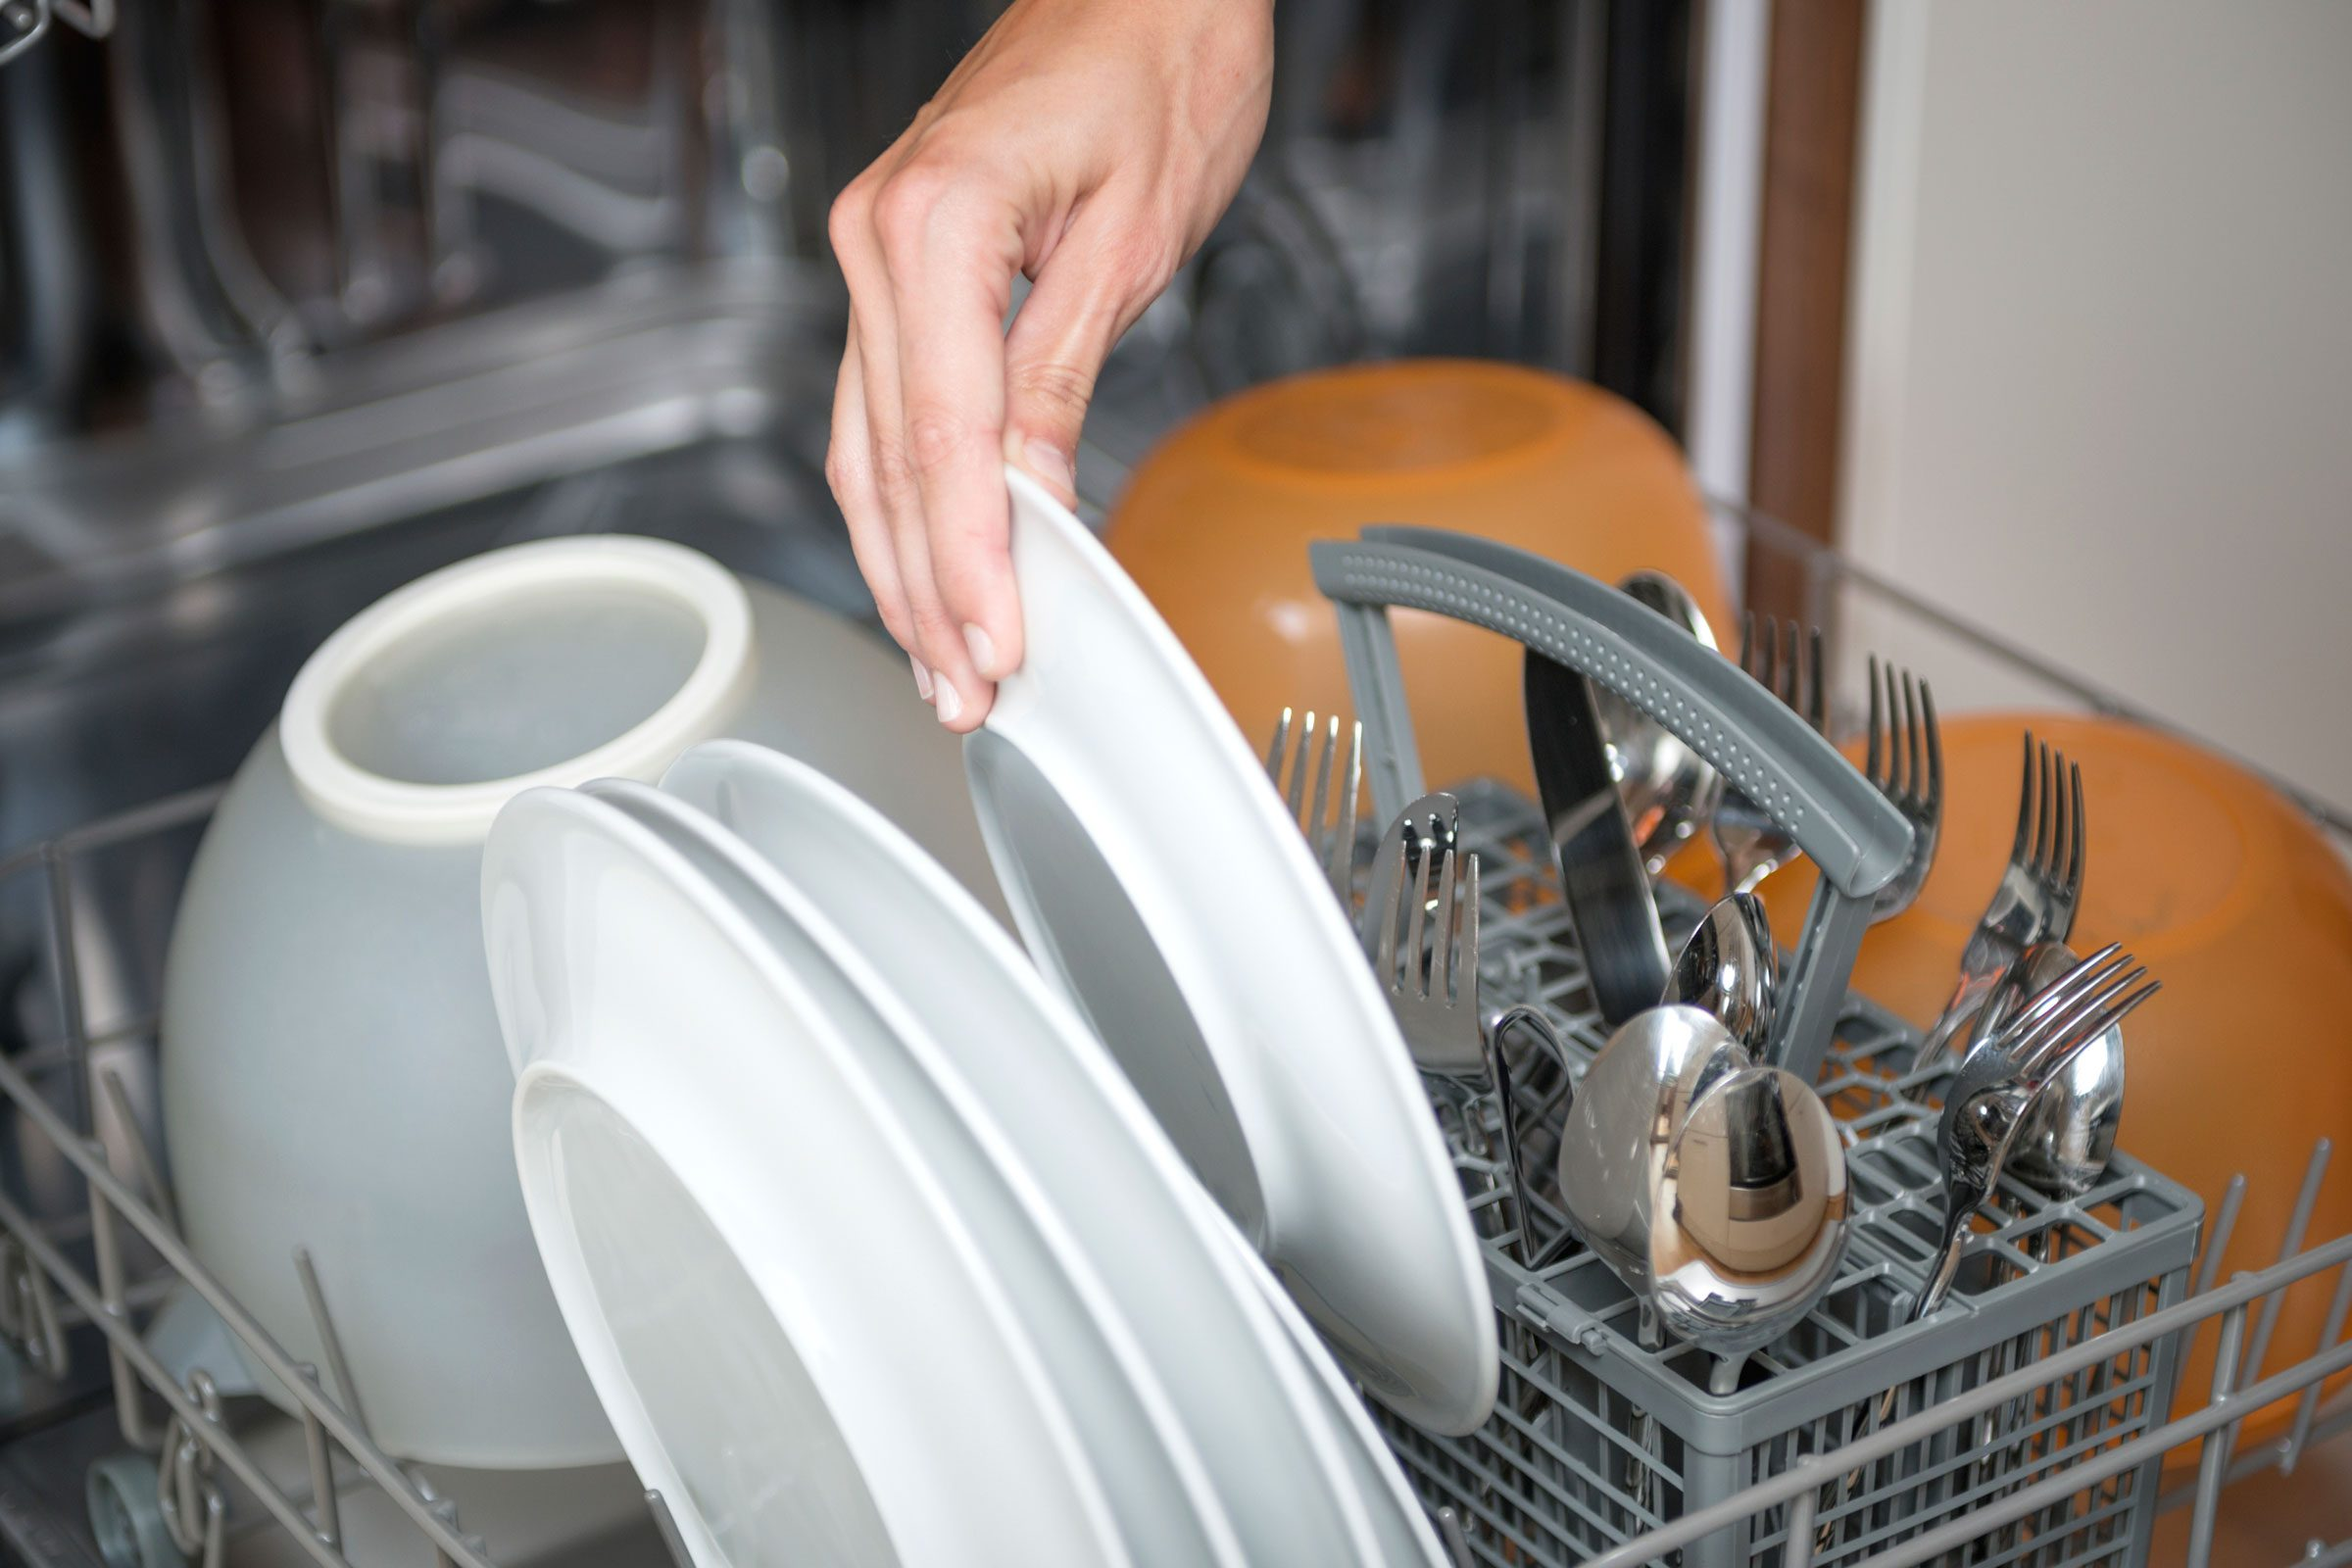 Uncategorized Kitchen Science Appliances household appliances ways you use kitchen equipment wrong dont organize your plates in the dishwasher correctly